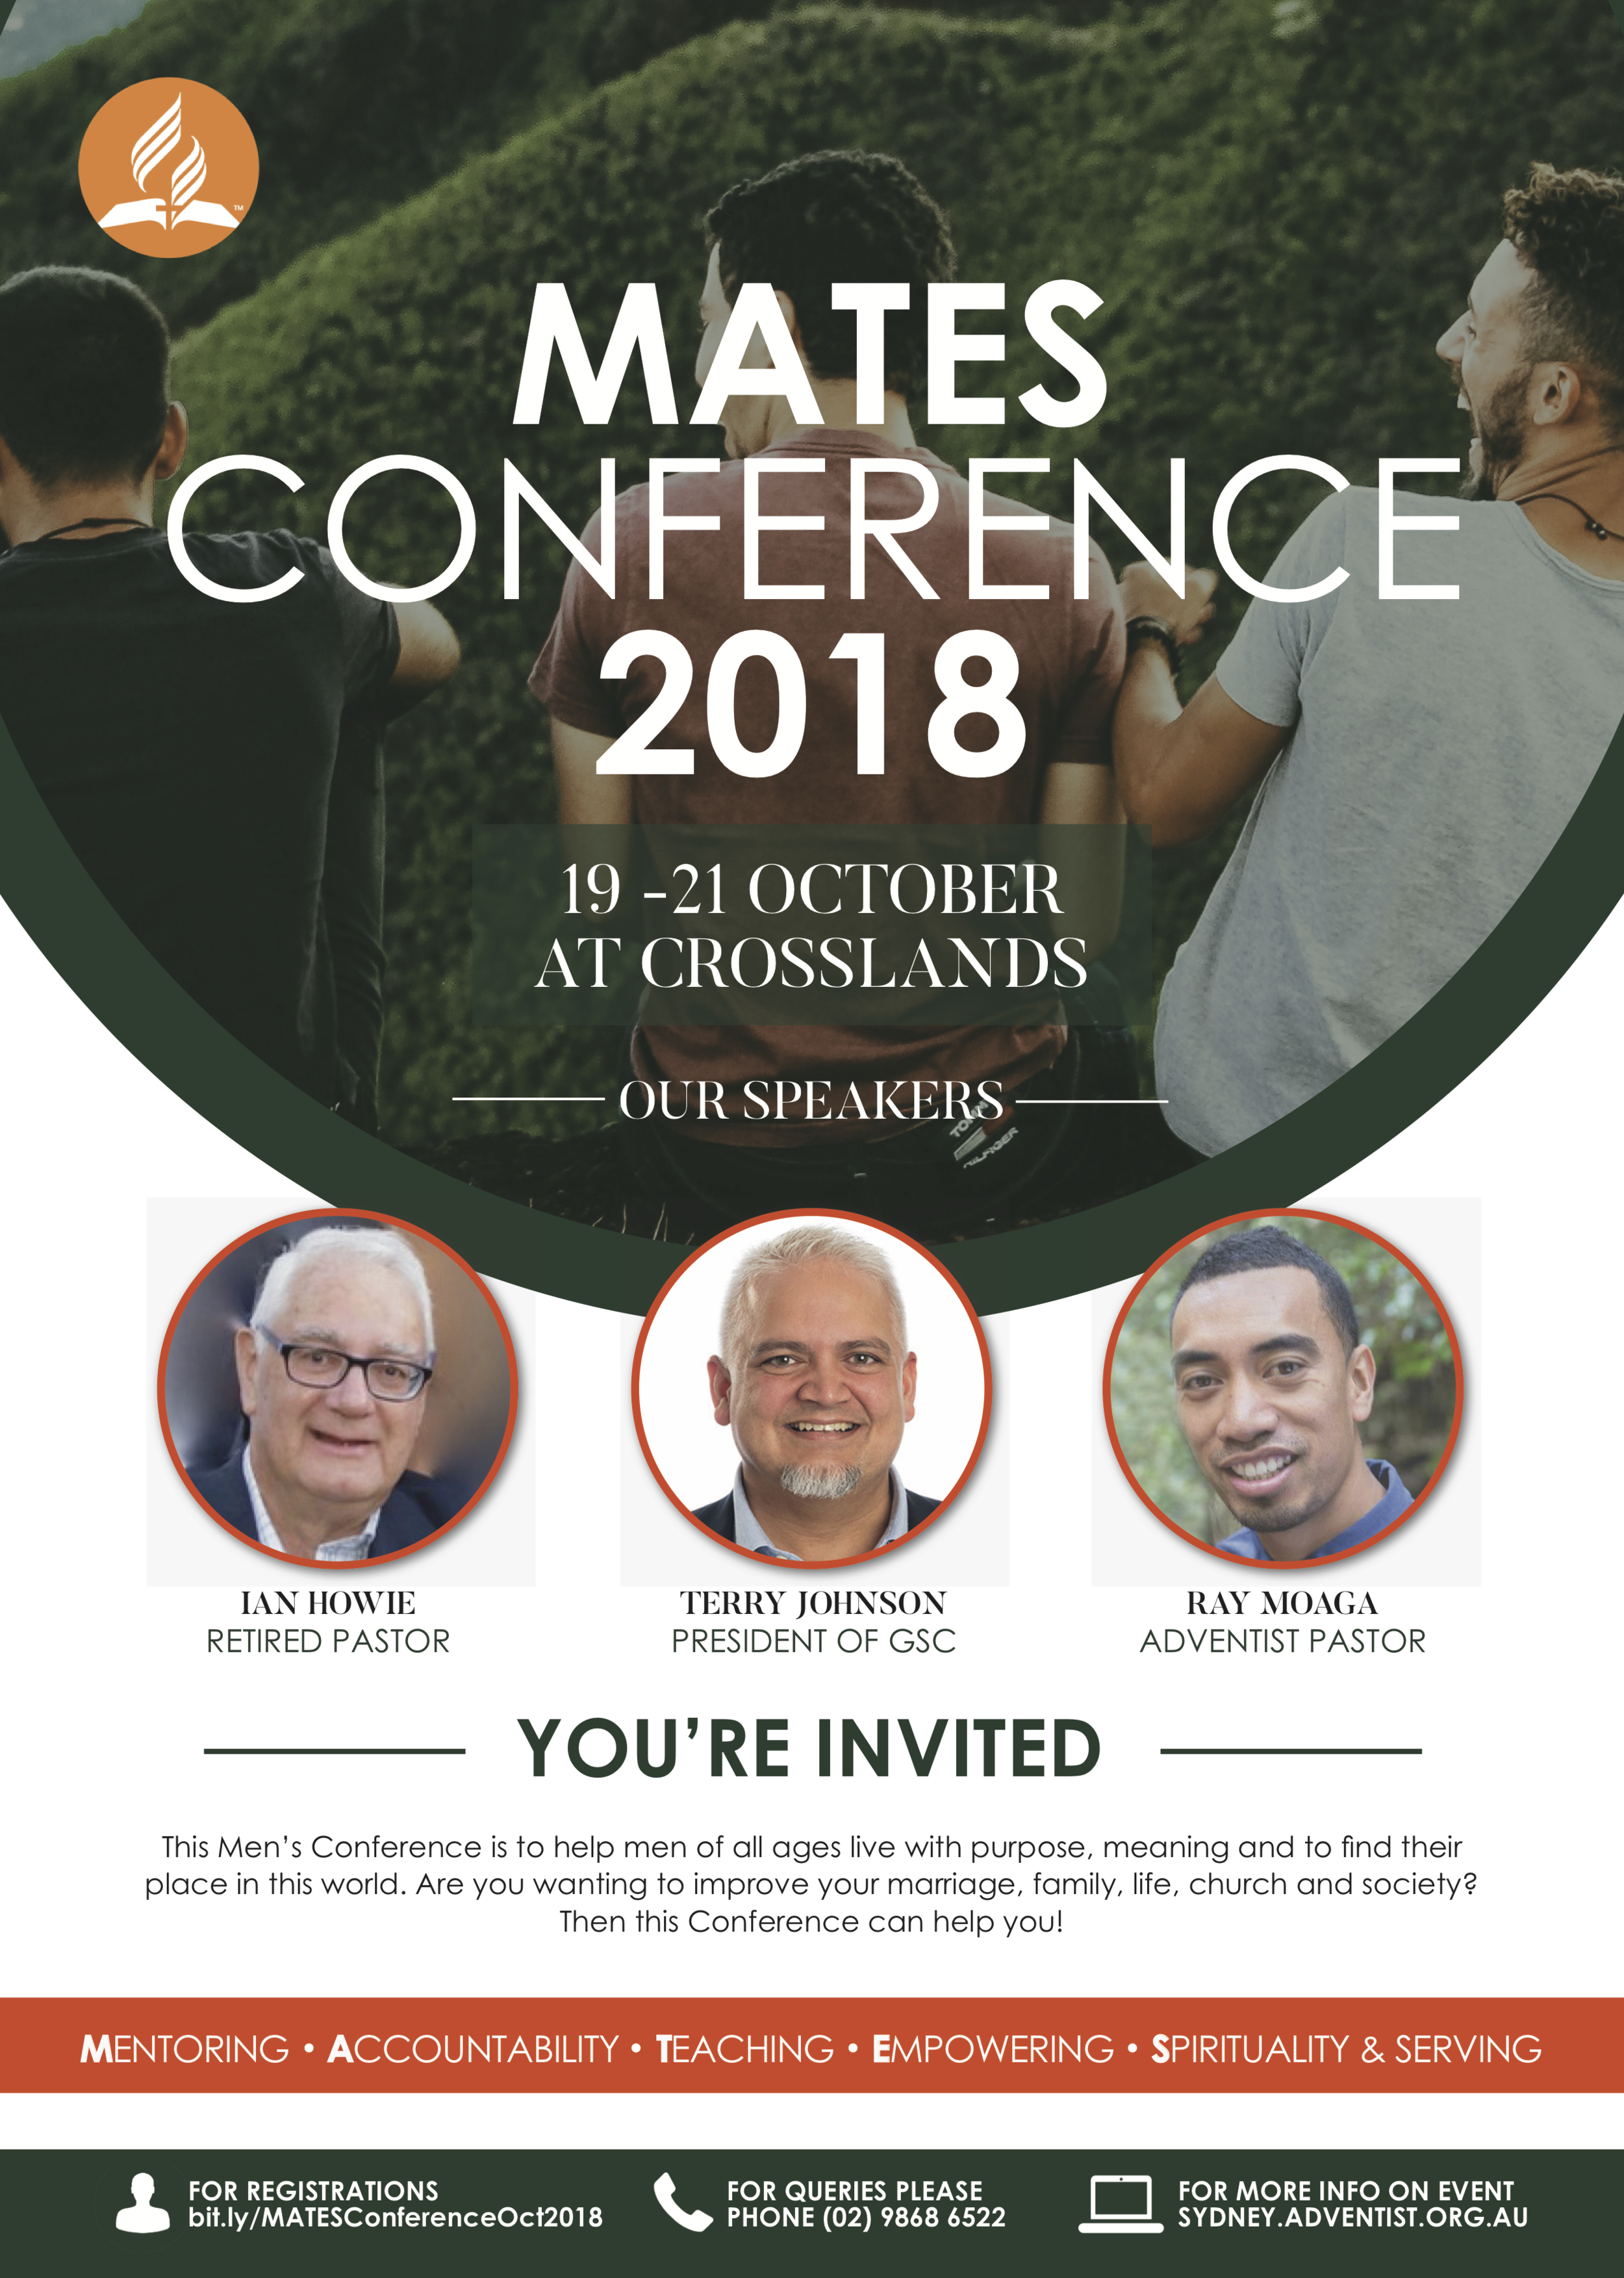 Christian-Mens-conference-october-2018-sydney.png